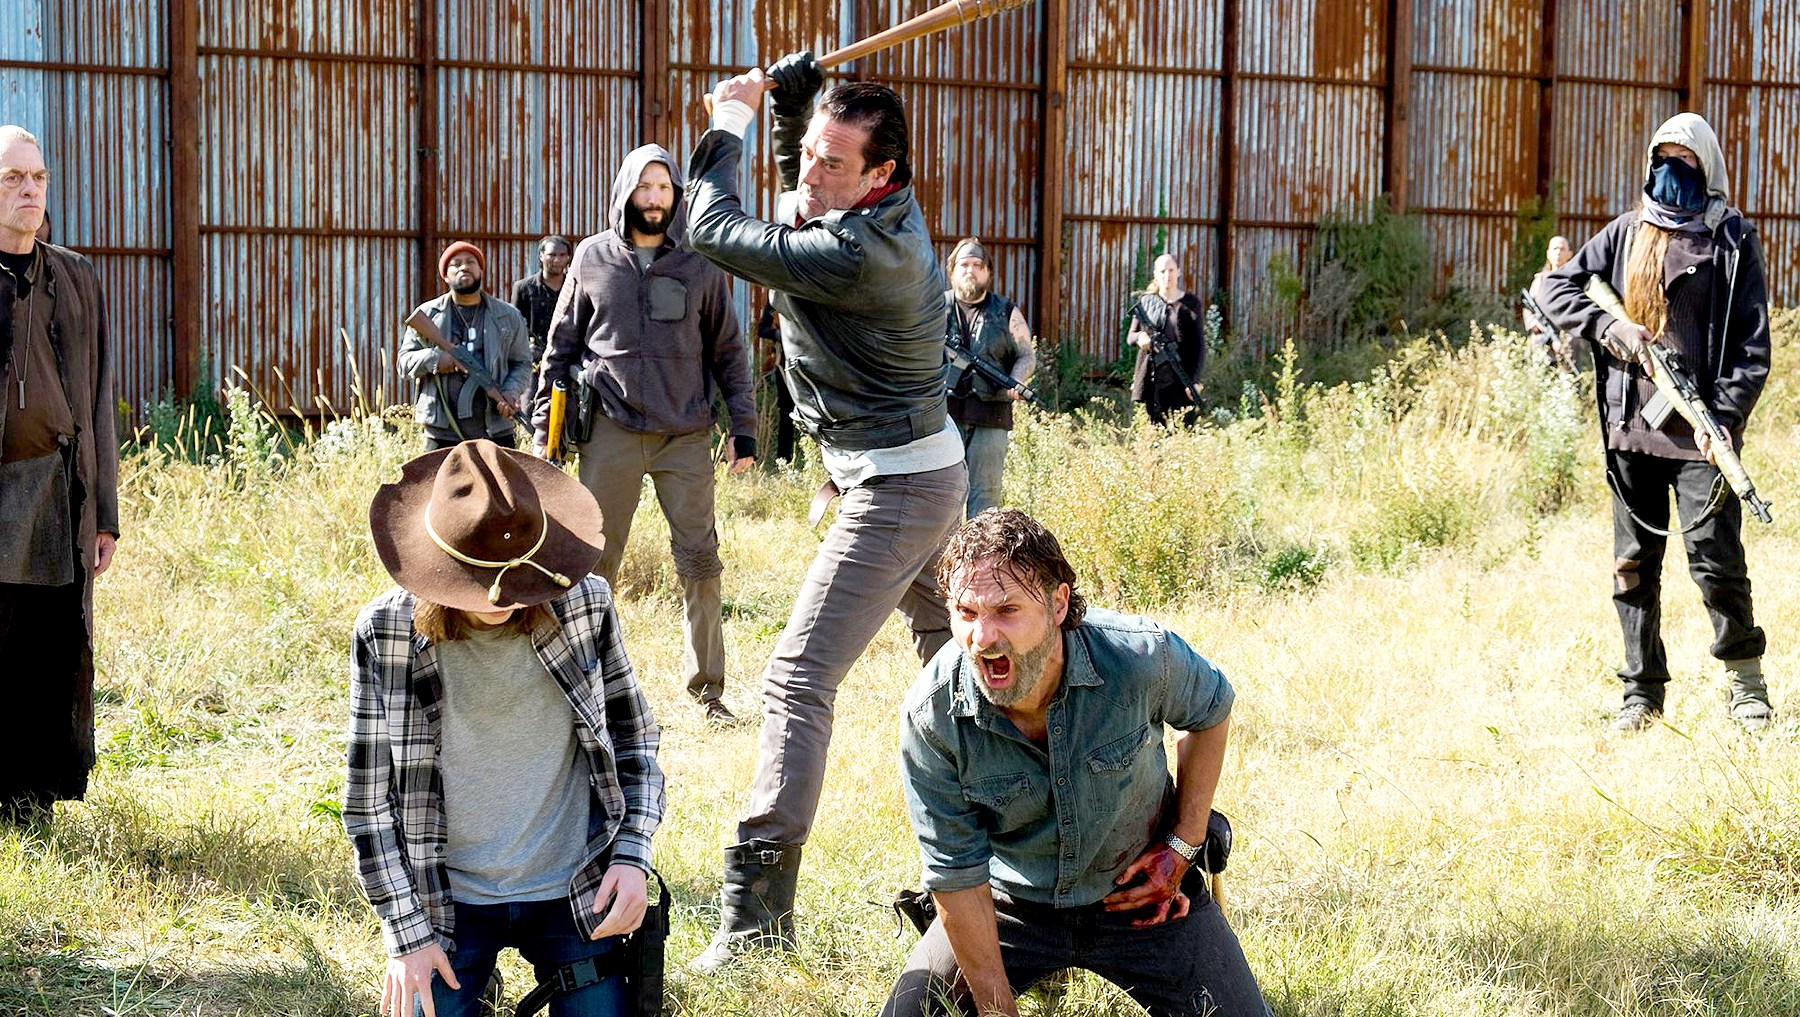 Andrew Lincoln as Rick Grimes, Chandler Riggs as Carl Grimes, Jeffrey Dean Morgan as Negan on The Walking Dead.